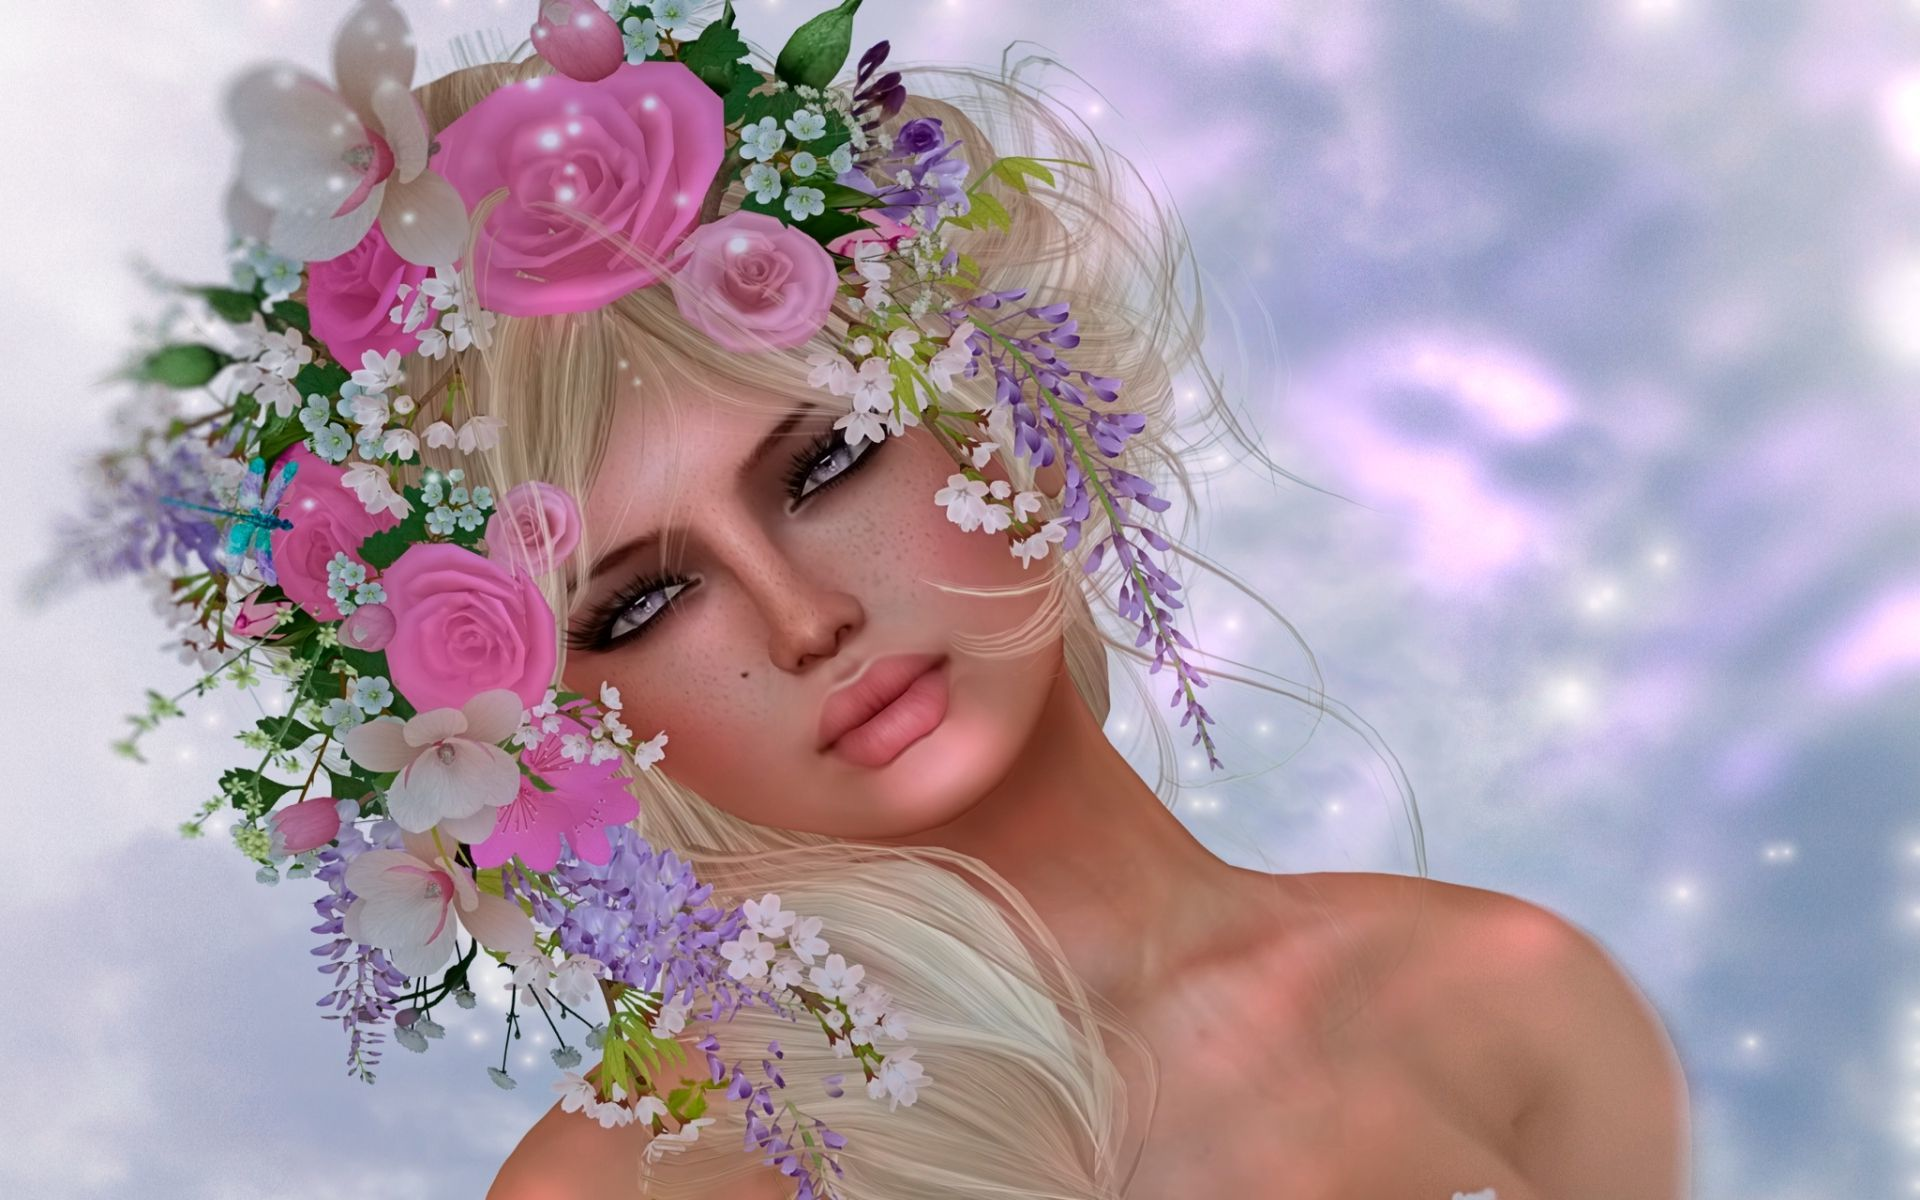 Fantasy Girl With Flower Crown Art Id 89100 Art Abyss